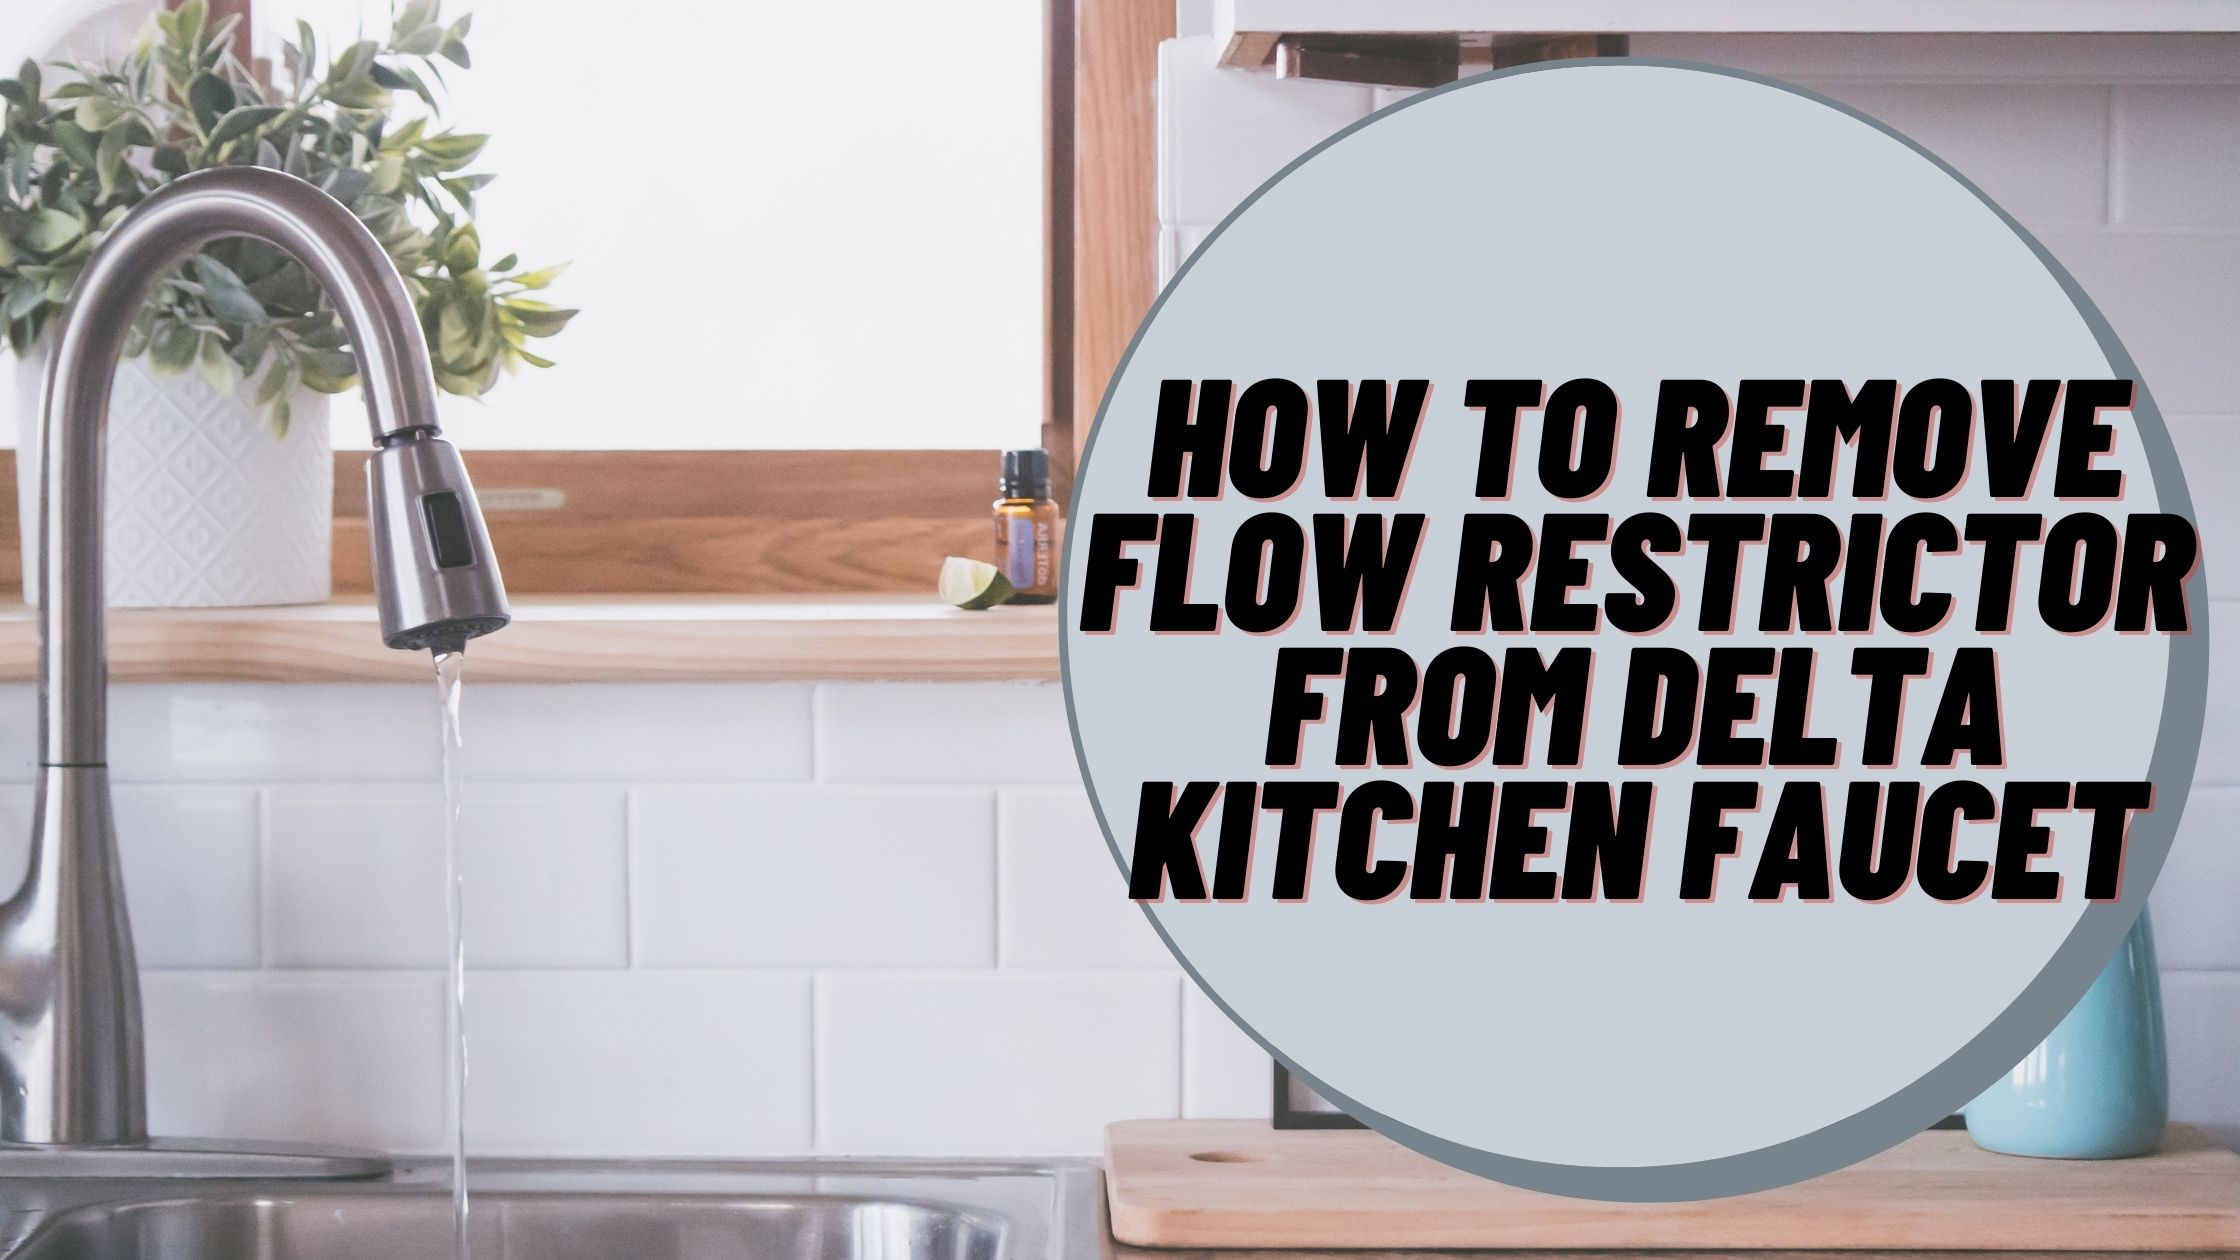 How to Remove Flow Restrictor from Delta Kitchen Faucet